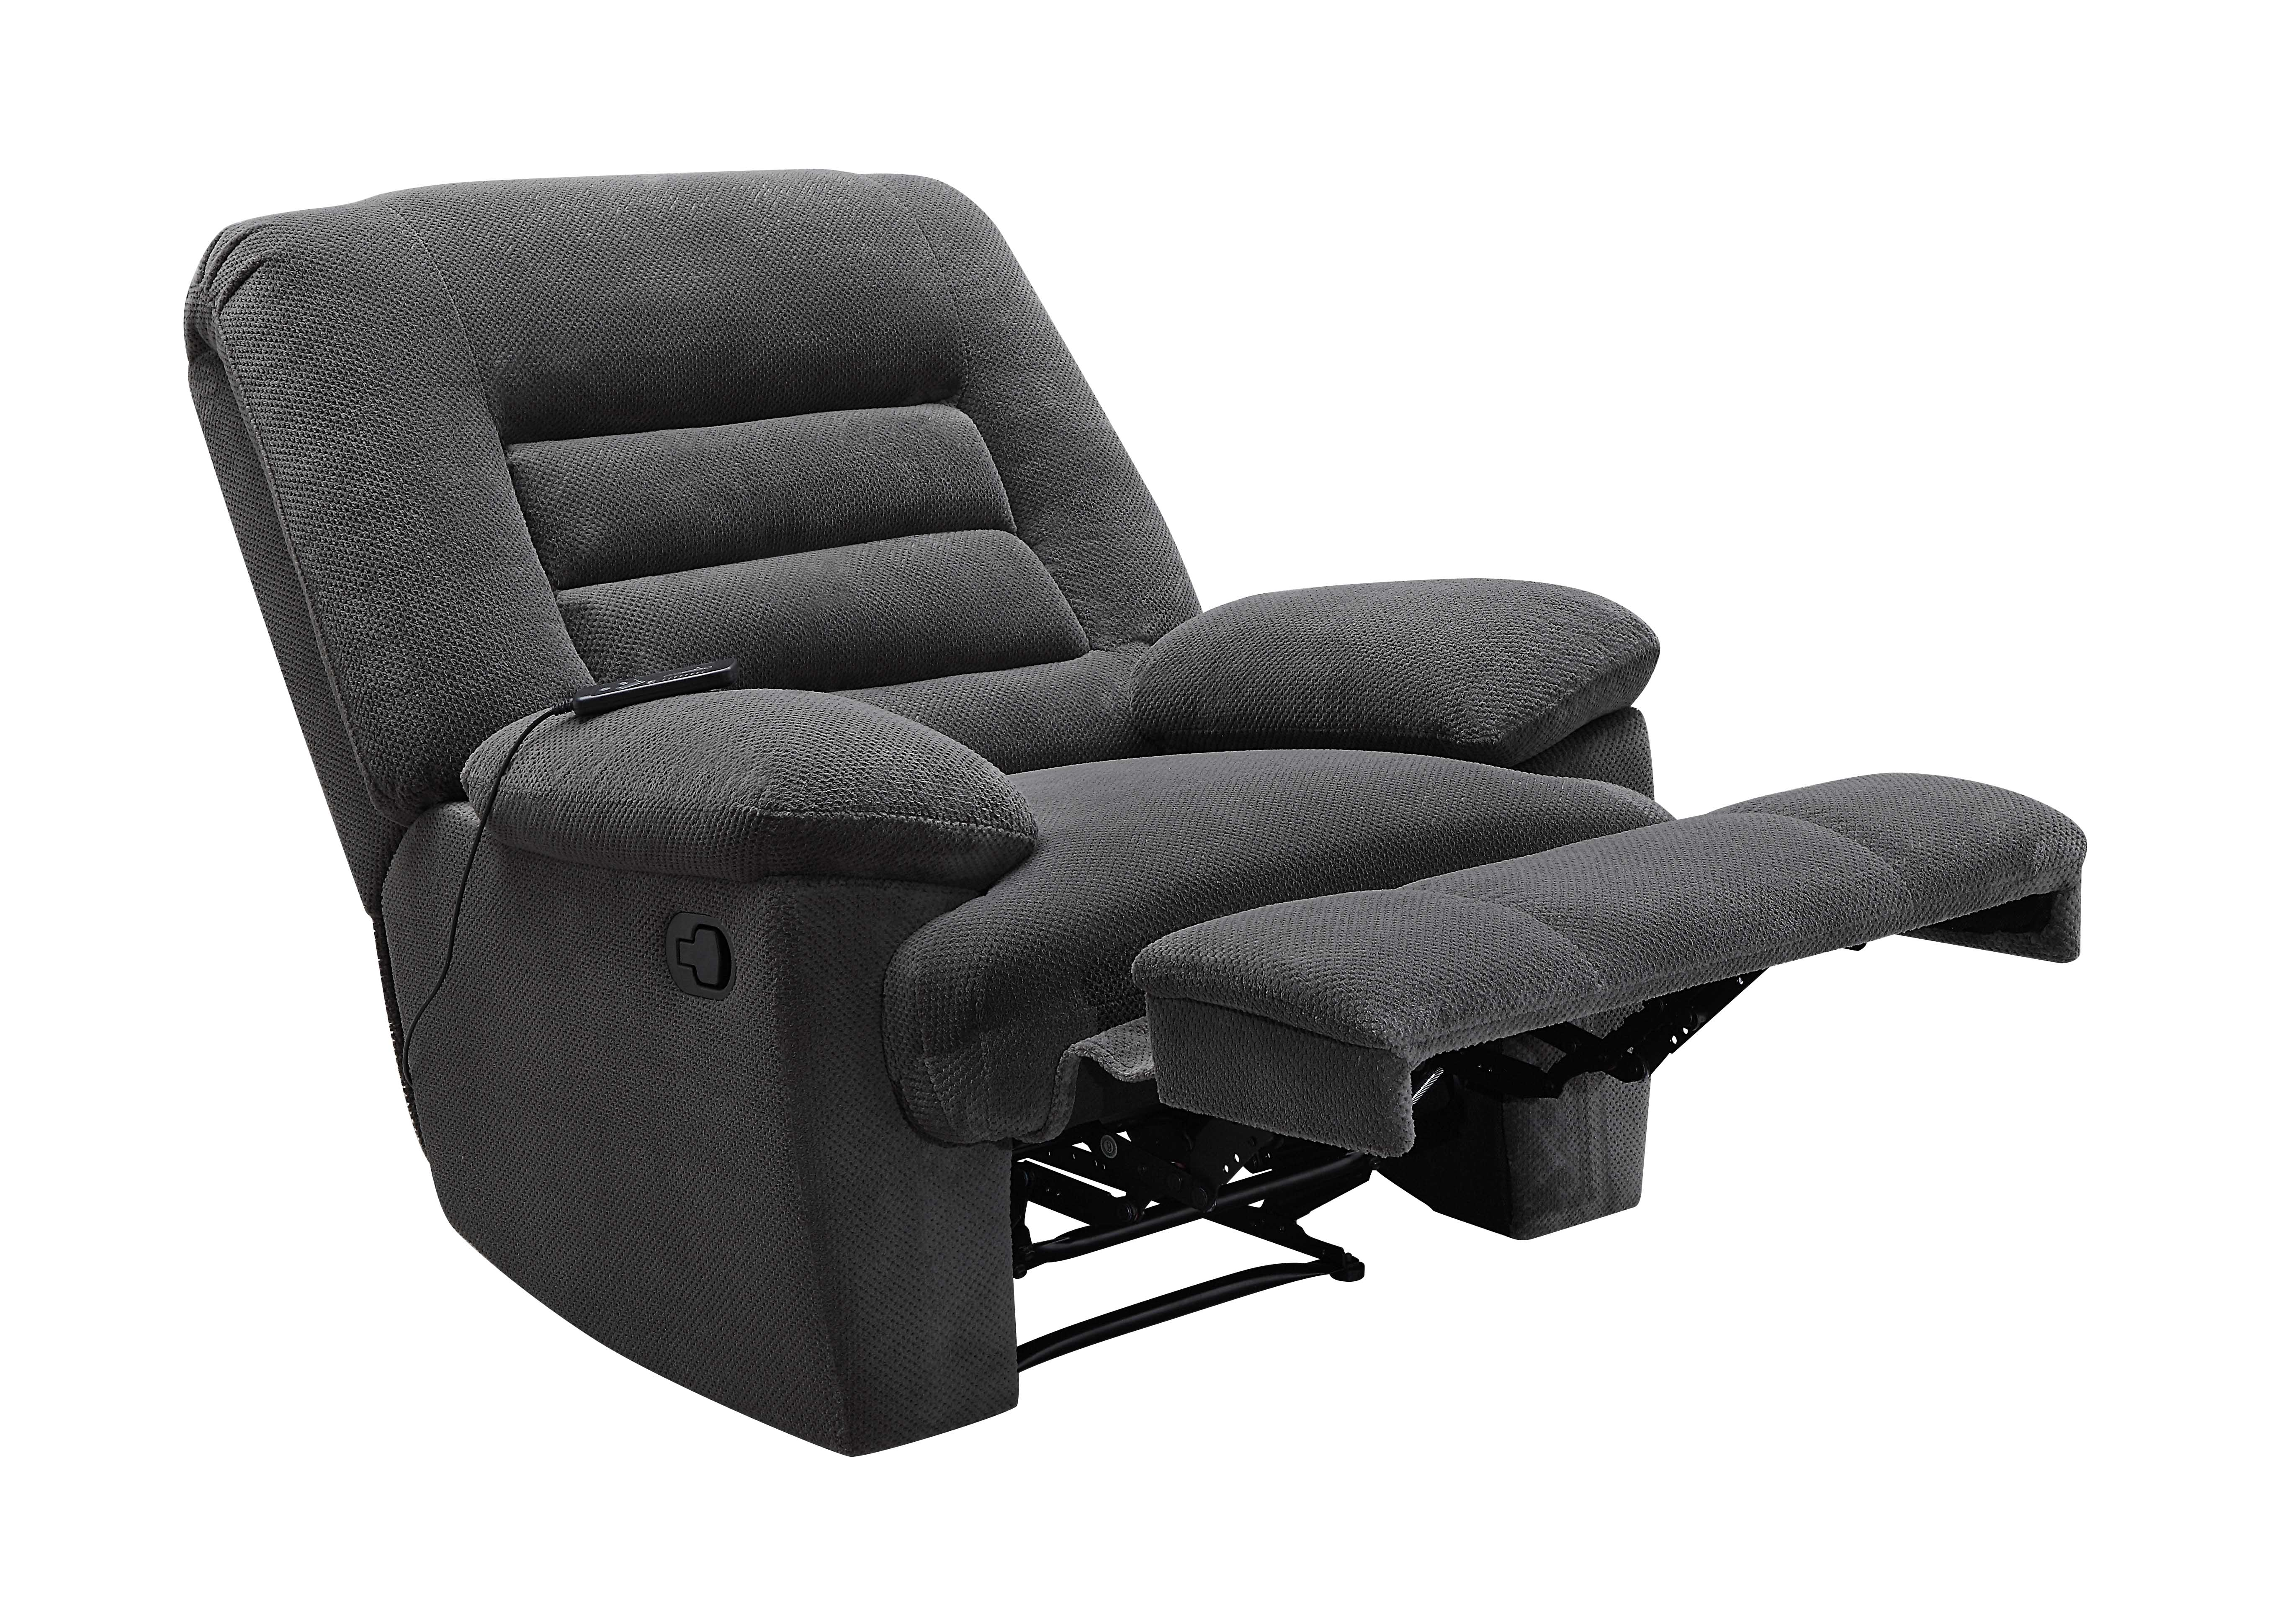 picture 25 of 26 - Serta Recliners